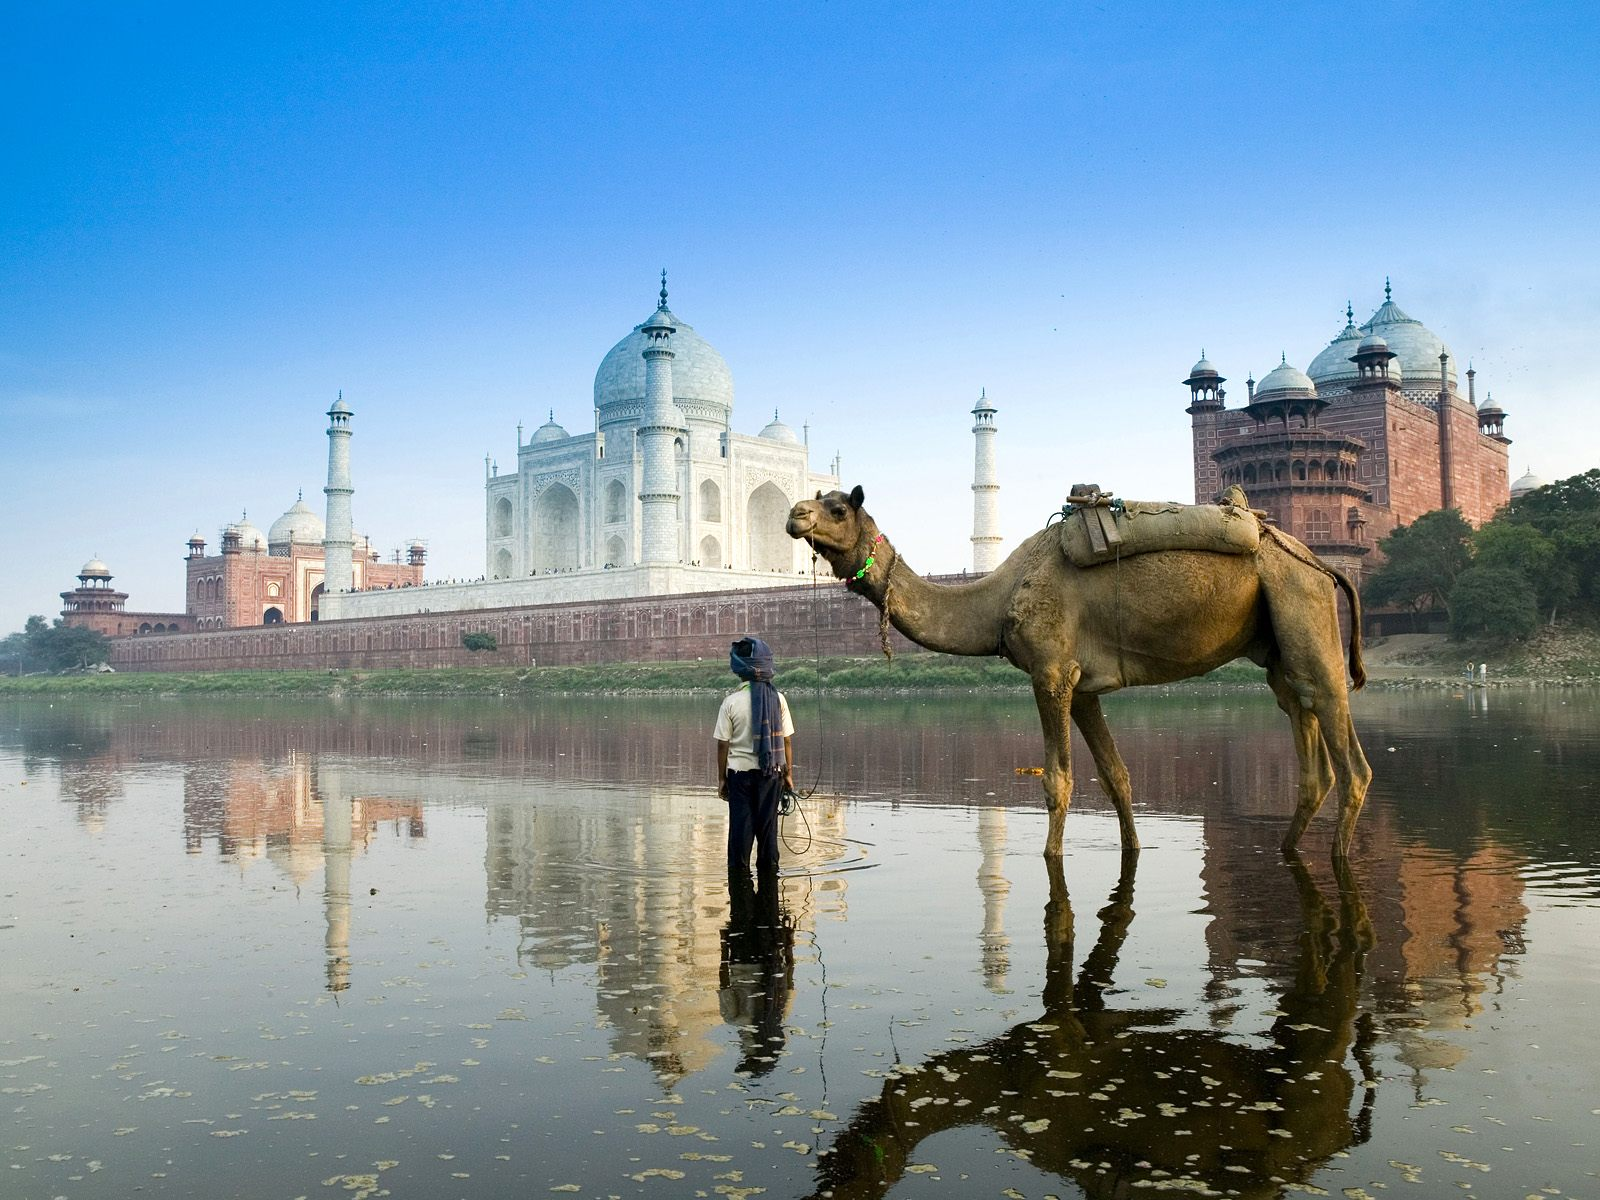 Yamuna River Agra India 375.76 Kb